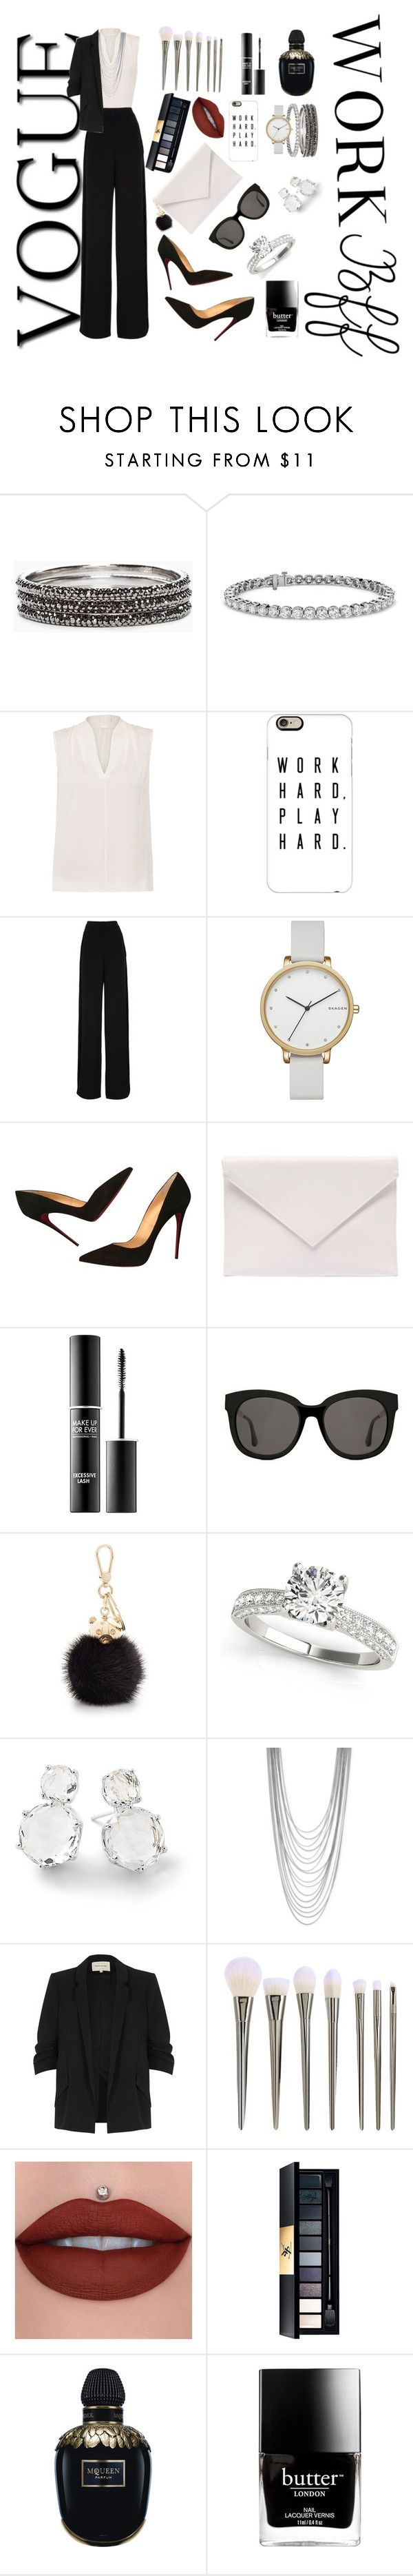 """""""Office"""" by tamazyananna ❤ liked on Polyvore featuring Chico's, Blue Nile, Elie Tahari, Casetify, Rochas, Skagen, Christian Louboutin, Verali, MAKE UP FOR EVER and Gentle Monster"""